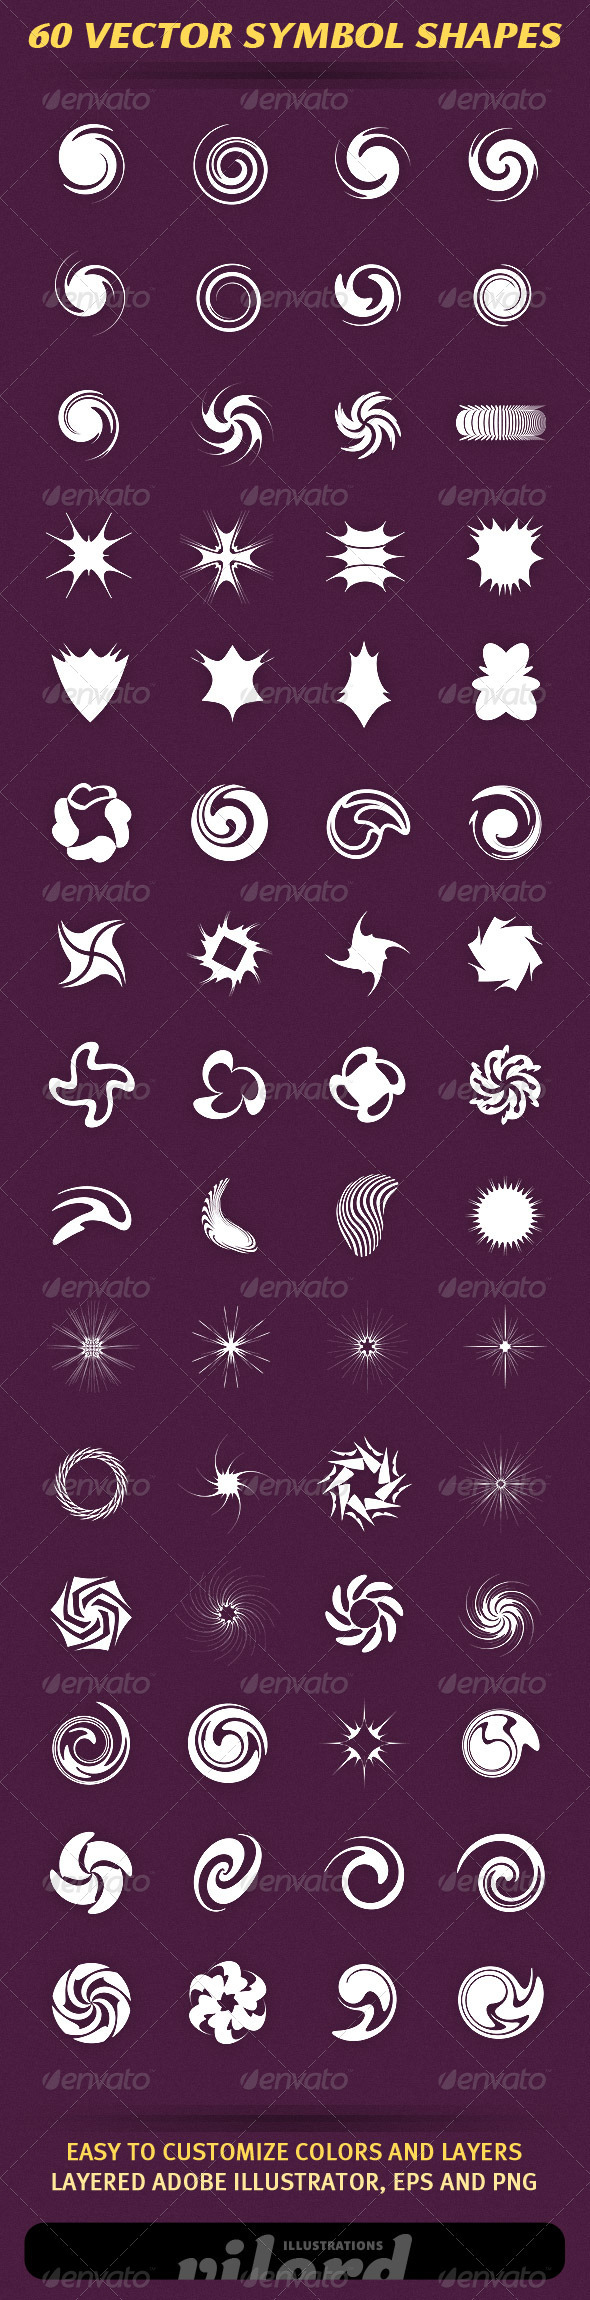 GraphicRiver 60 Vector Symbol Shapes 2533515